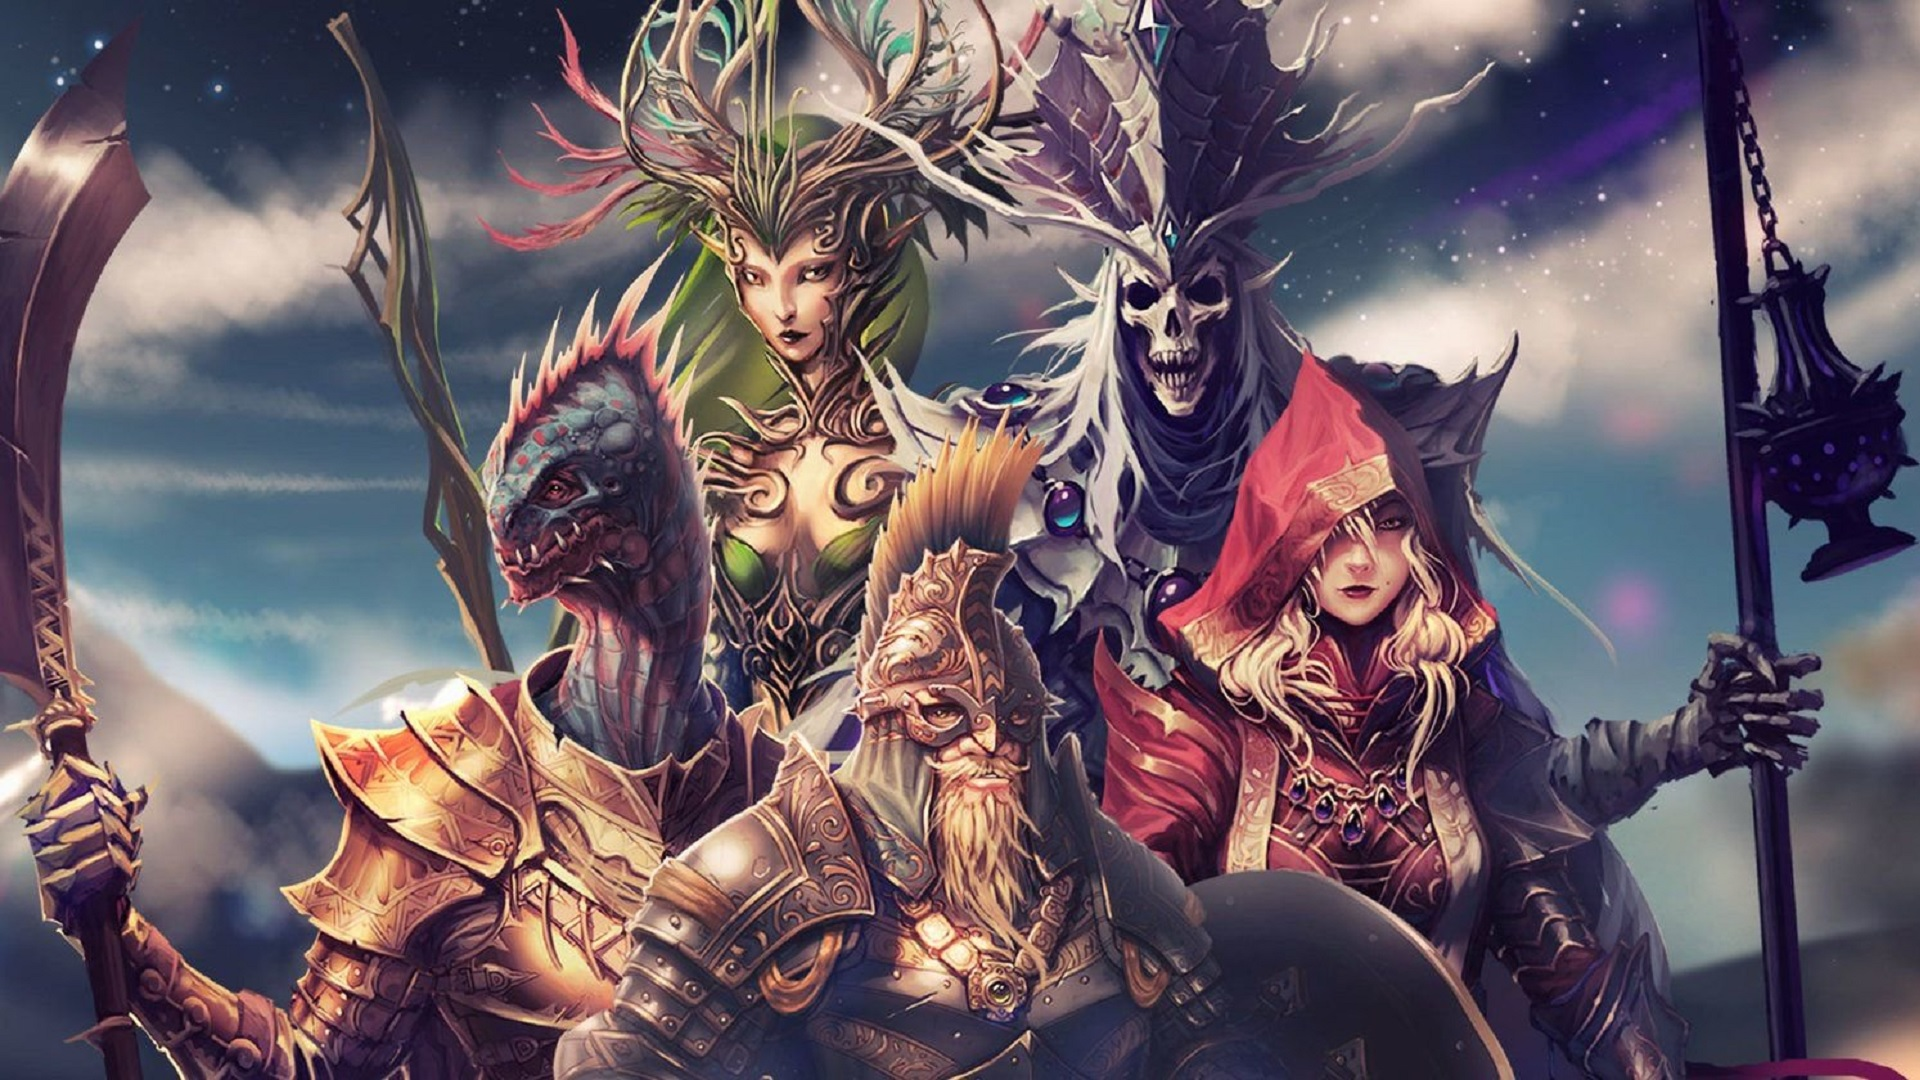 Original Sin - Divinity Original Sin 2 Amadia , HD Wallpaper & Backgrounds